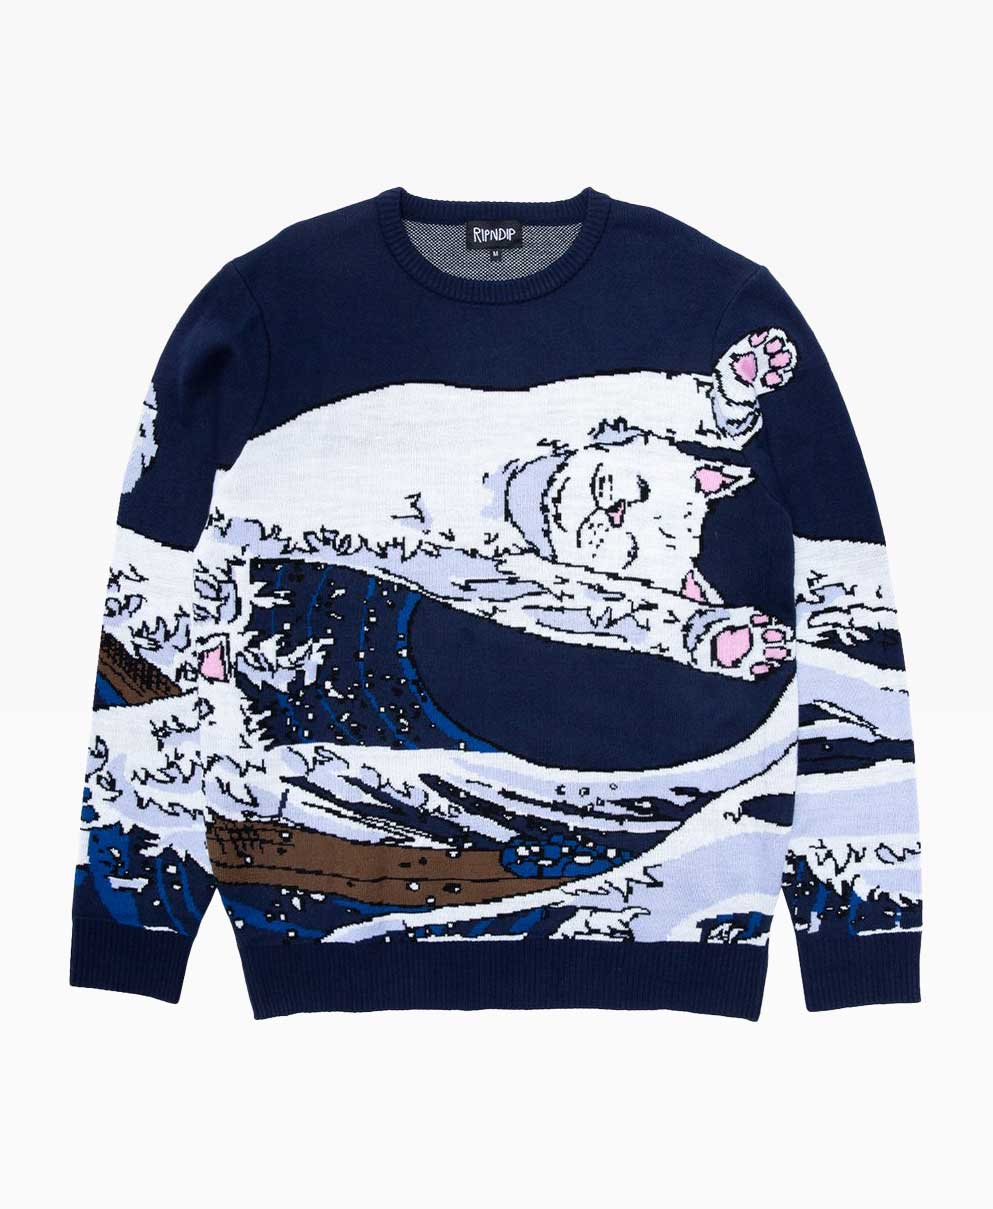 Ripndip Great Wave Crewneck Knit Sweater Front